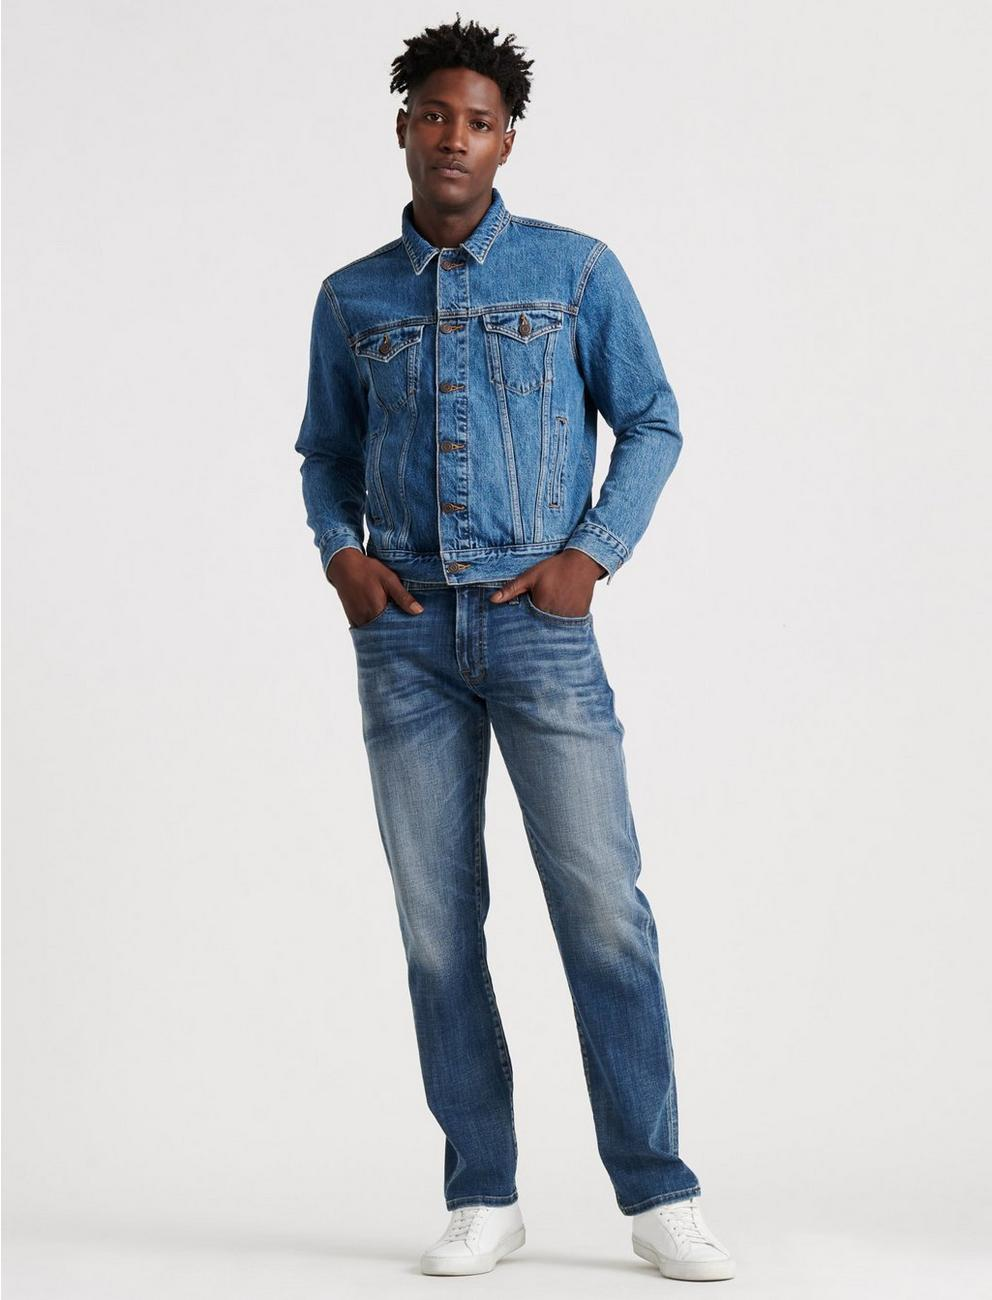 221 STRAIGHT COOLMAX ALL SEASON TECHNOLOGY JEAN, SADDLEBROOKE